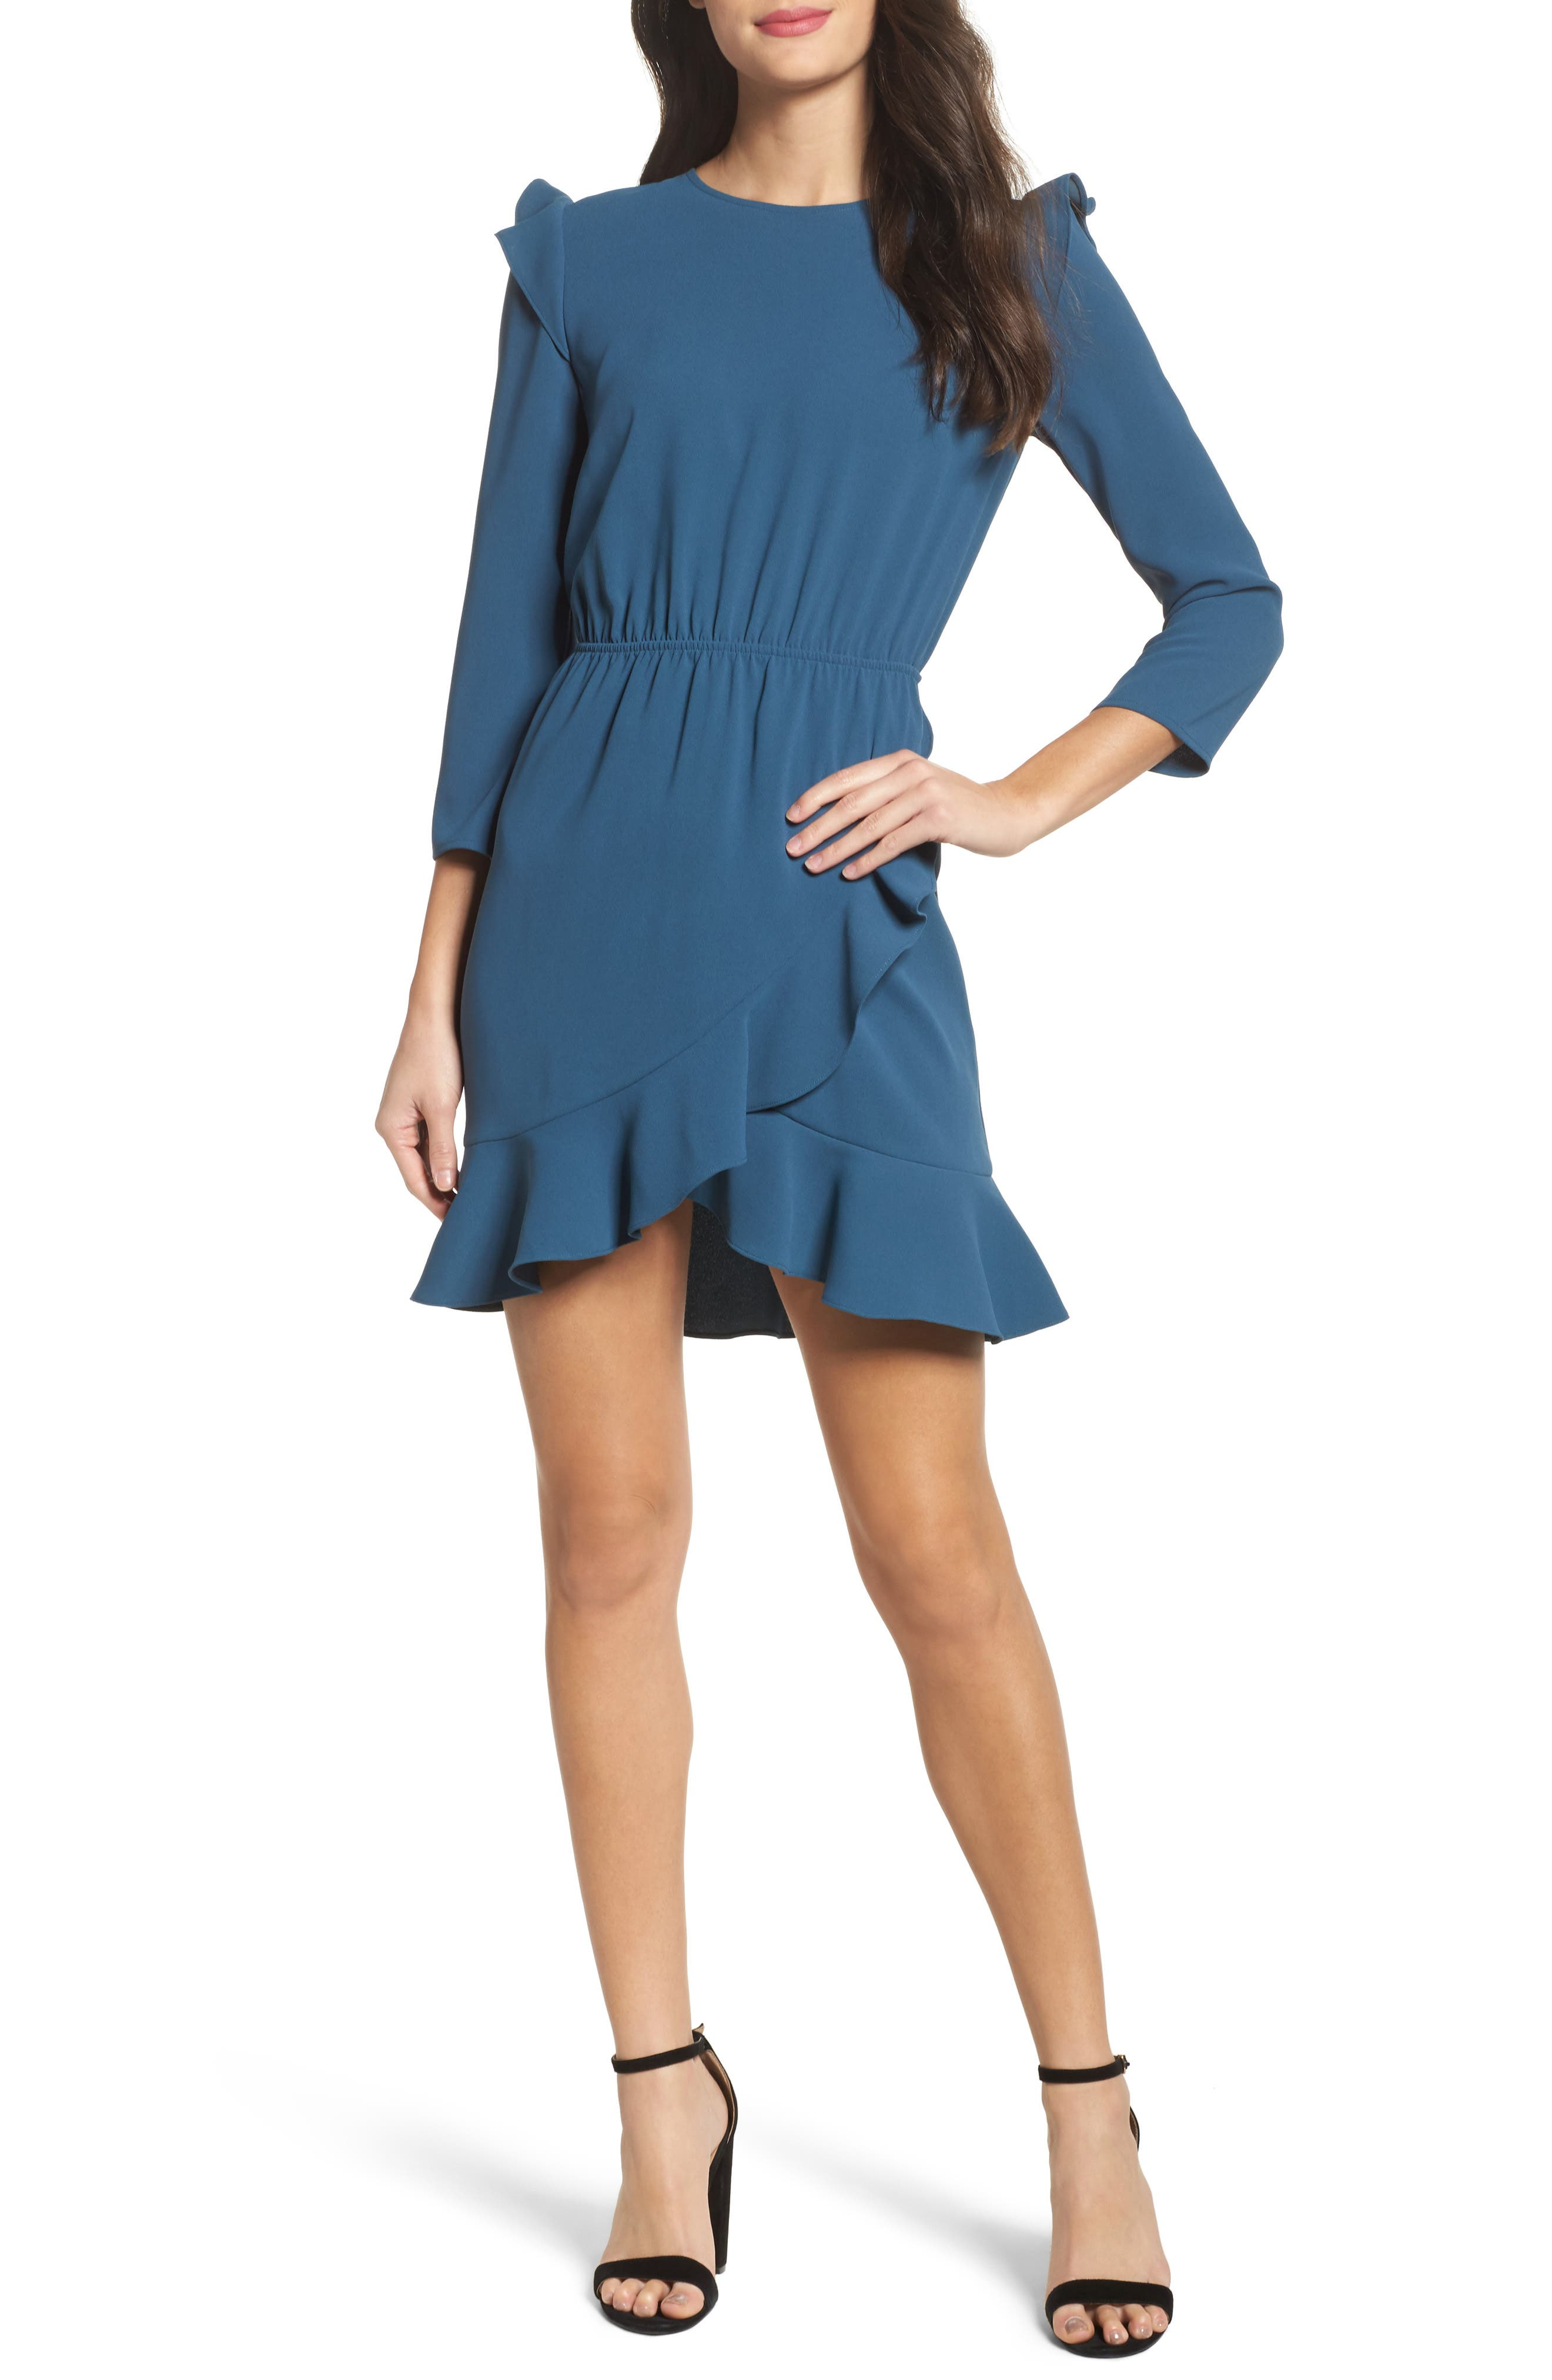 St Germain Ruffle Fit & Flare Dress,                         Main,                         color, Spruce